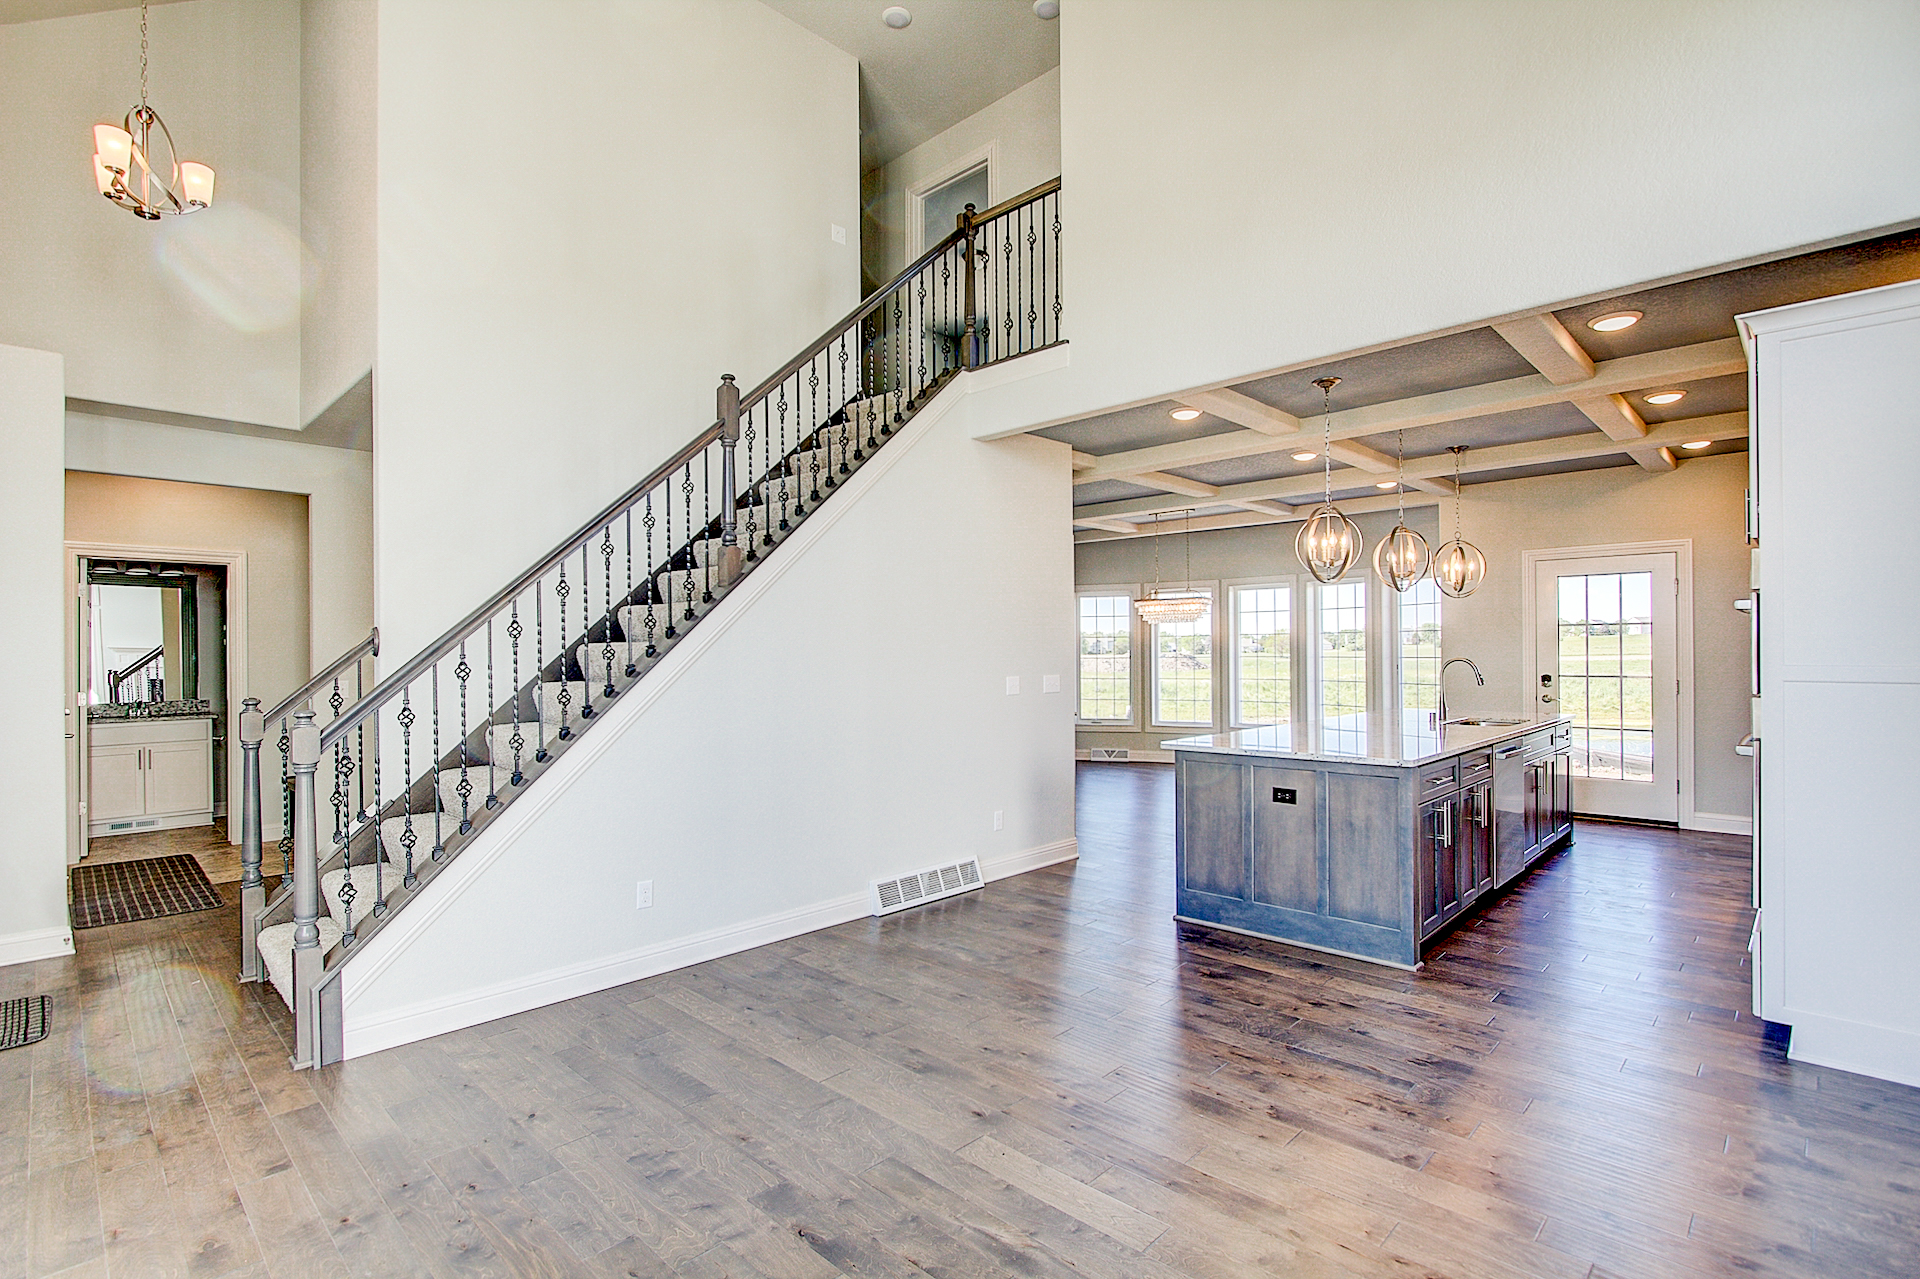 Staircase to Bedrooms/Views of Kitchen